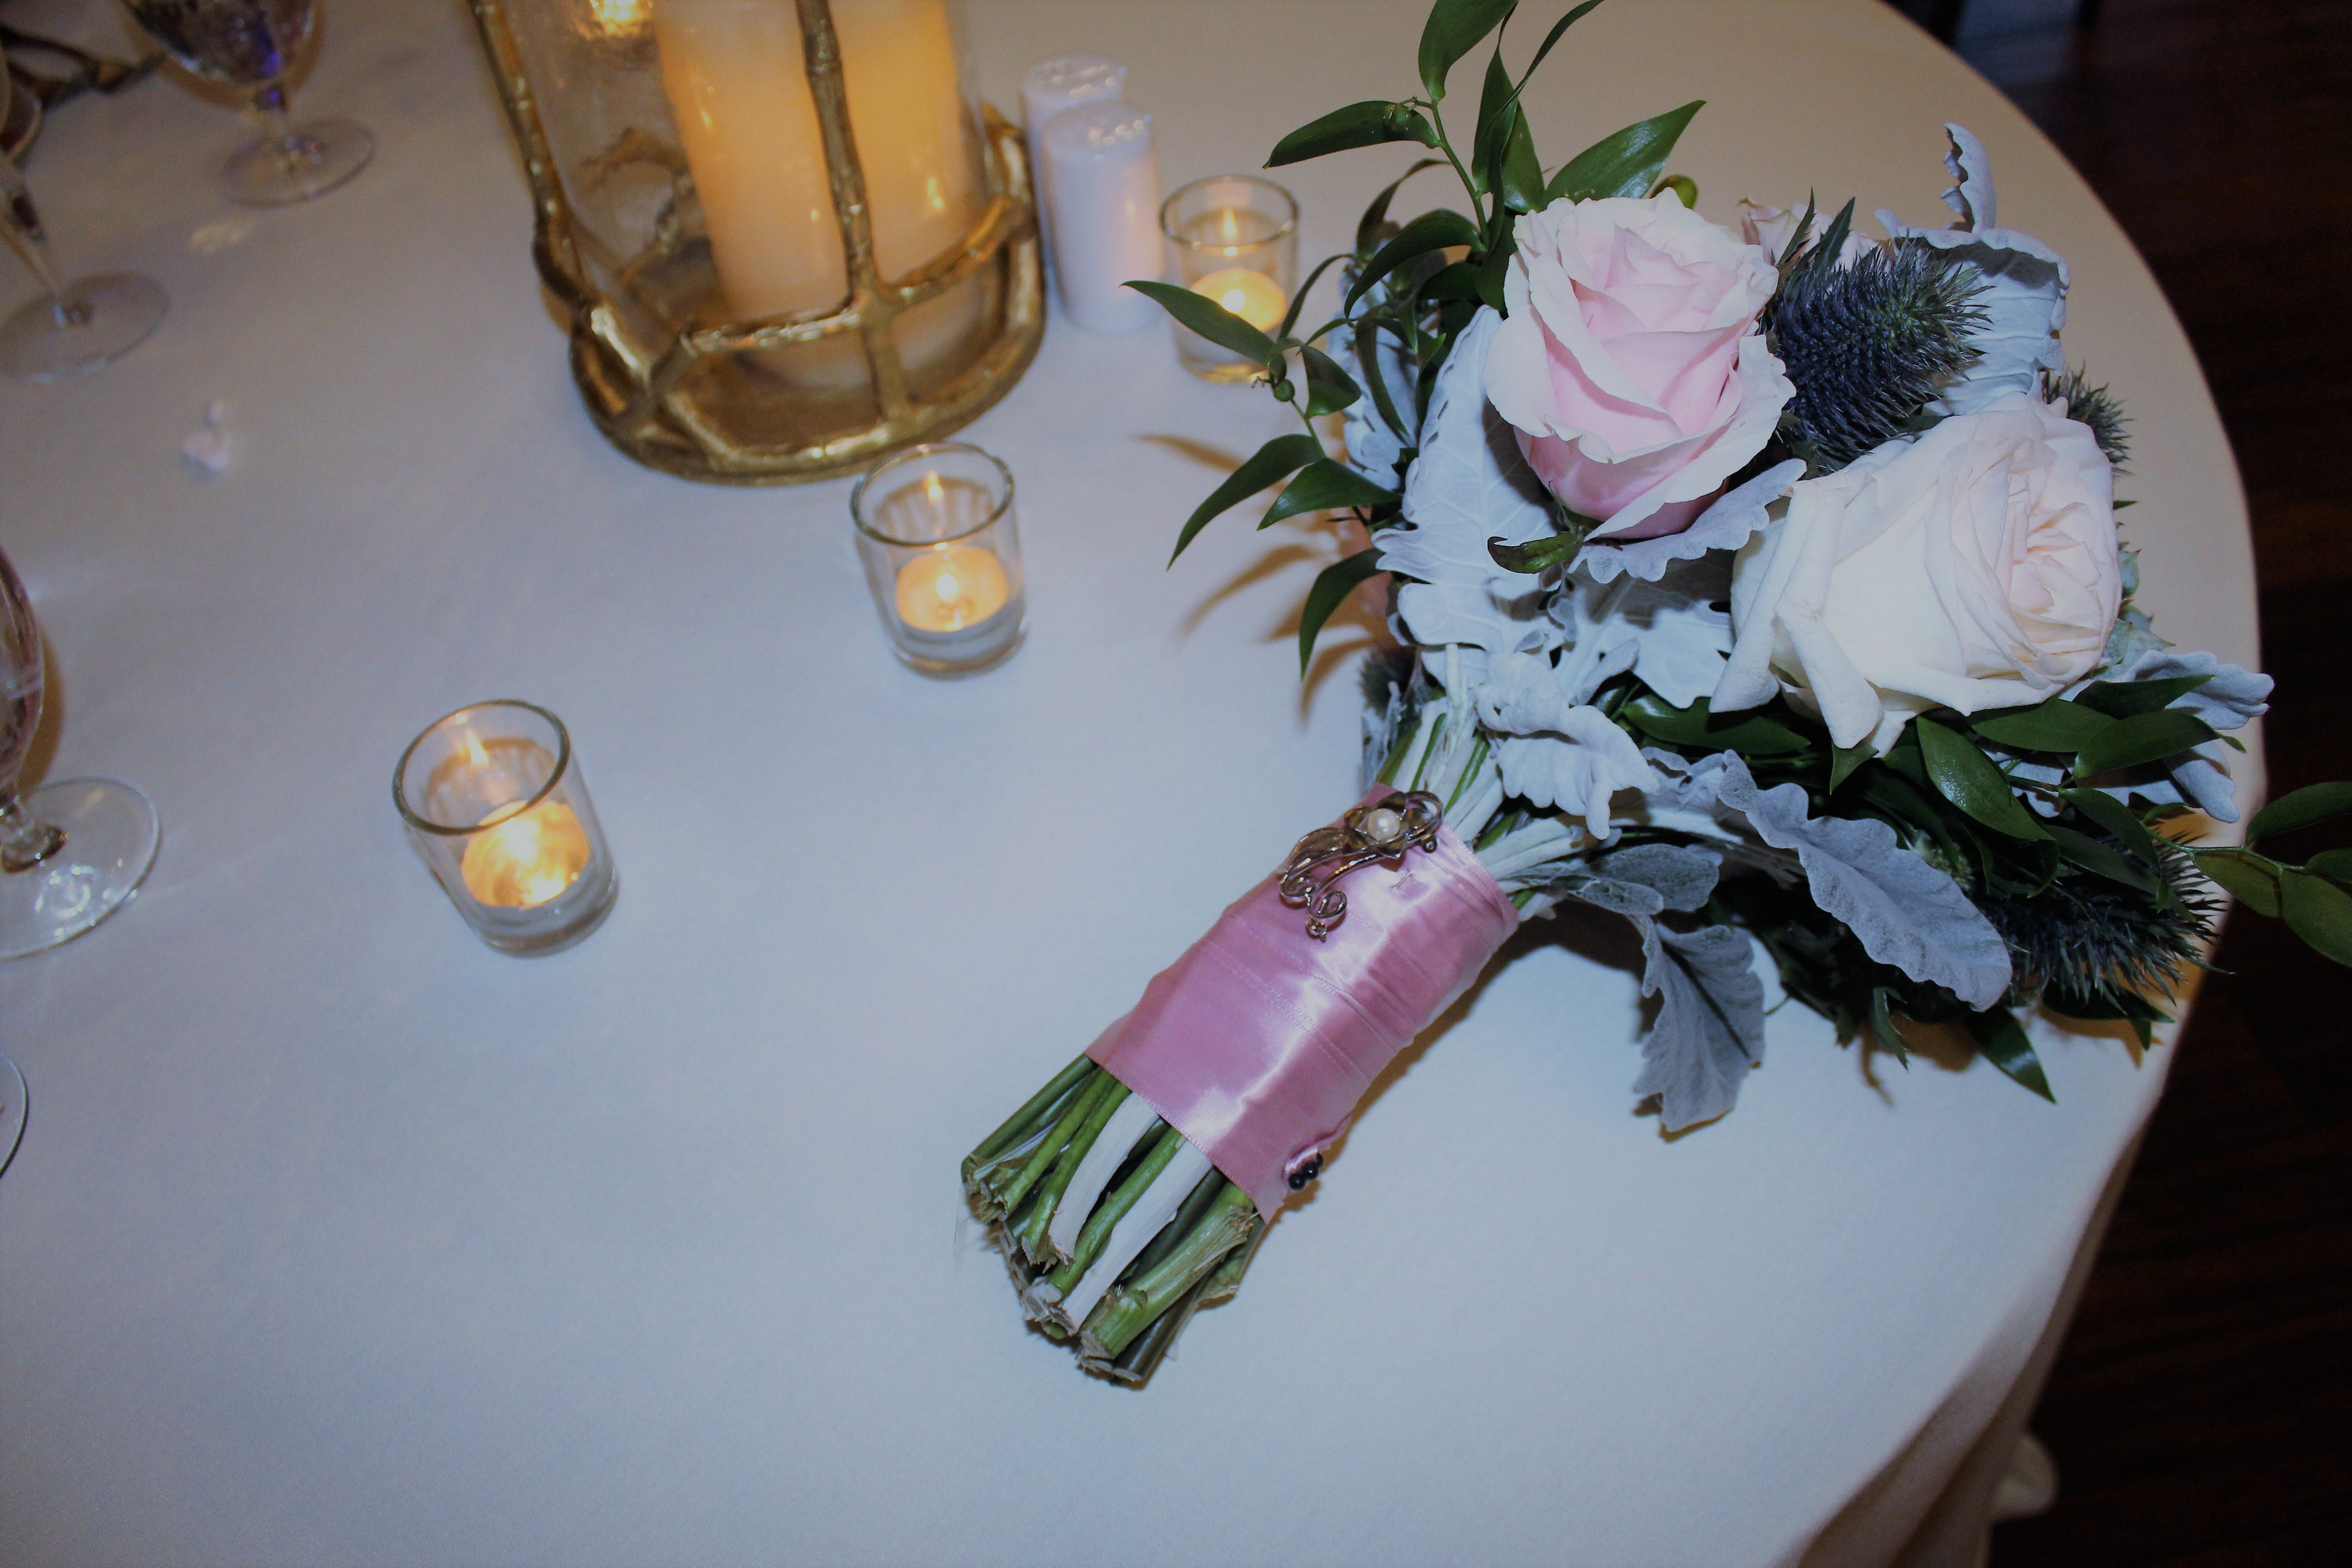 Free stock photo of flowers, table, wedding bouquet